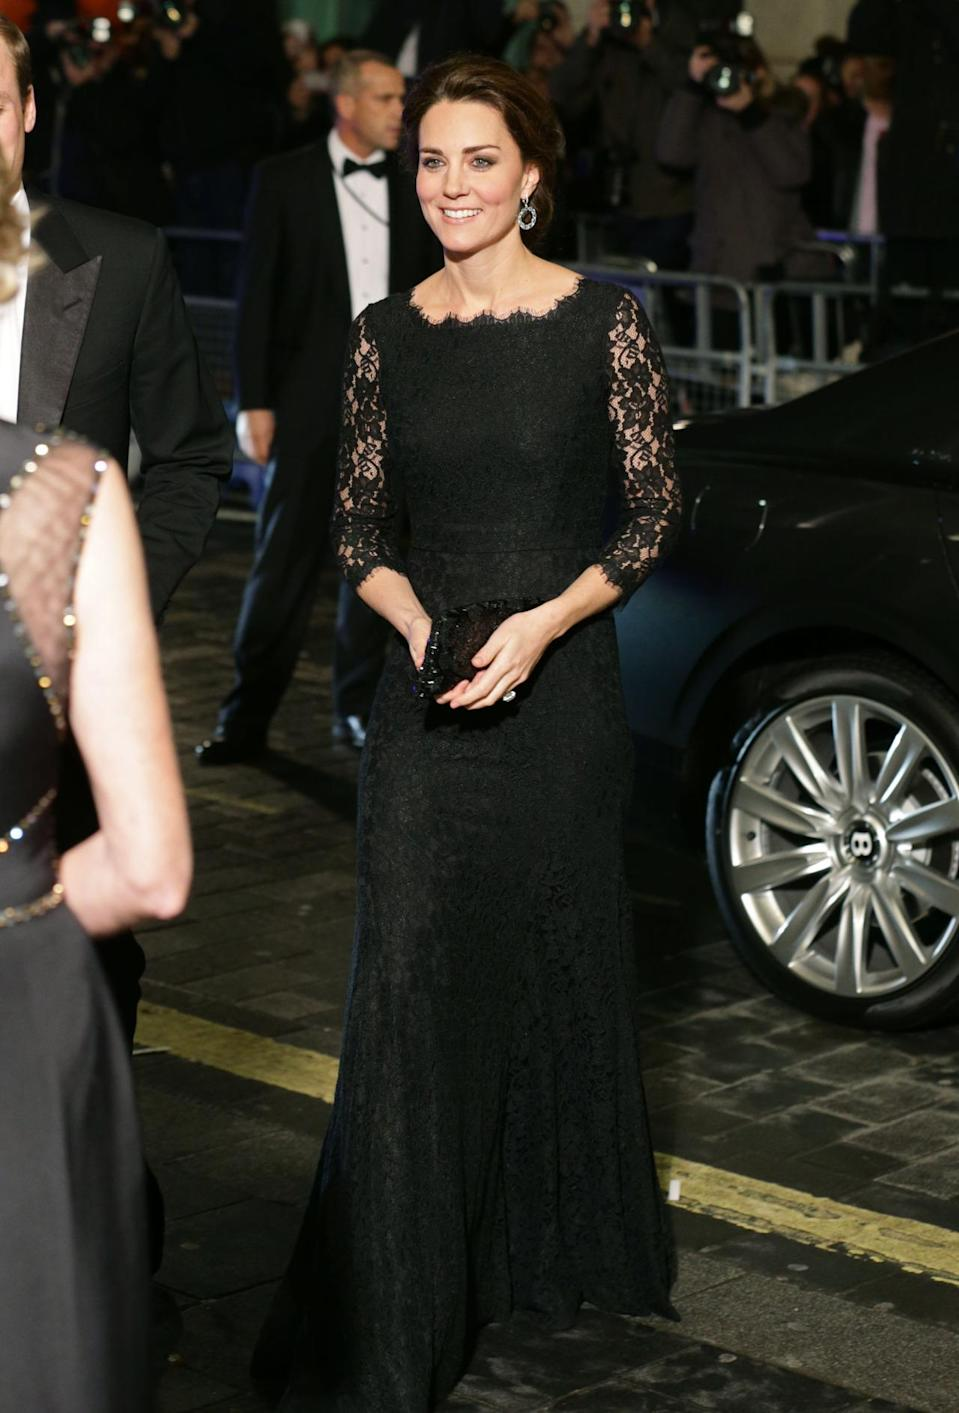 <p>Kate stunned in a black lace gown by Diane von Furstenberg for 2014's Royal Variety Show. She paired the look with a vintage clutch and black Jimmy Choo pumps. </p><p><i>[Photo: PA]</i></p>